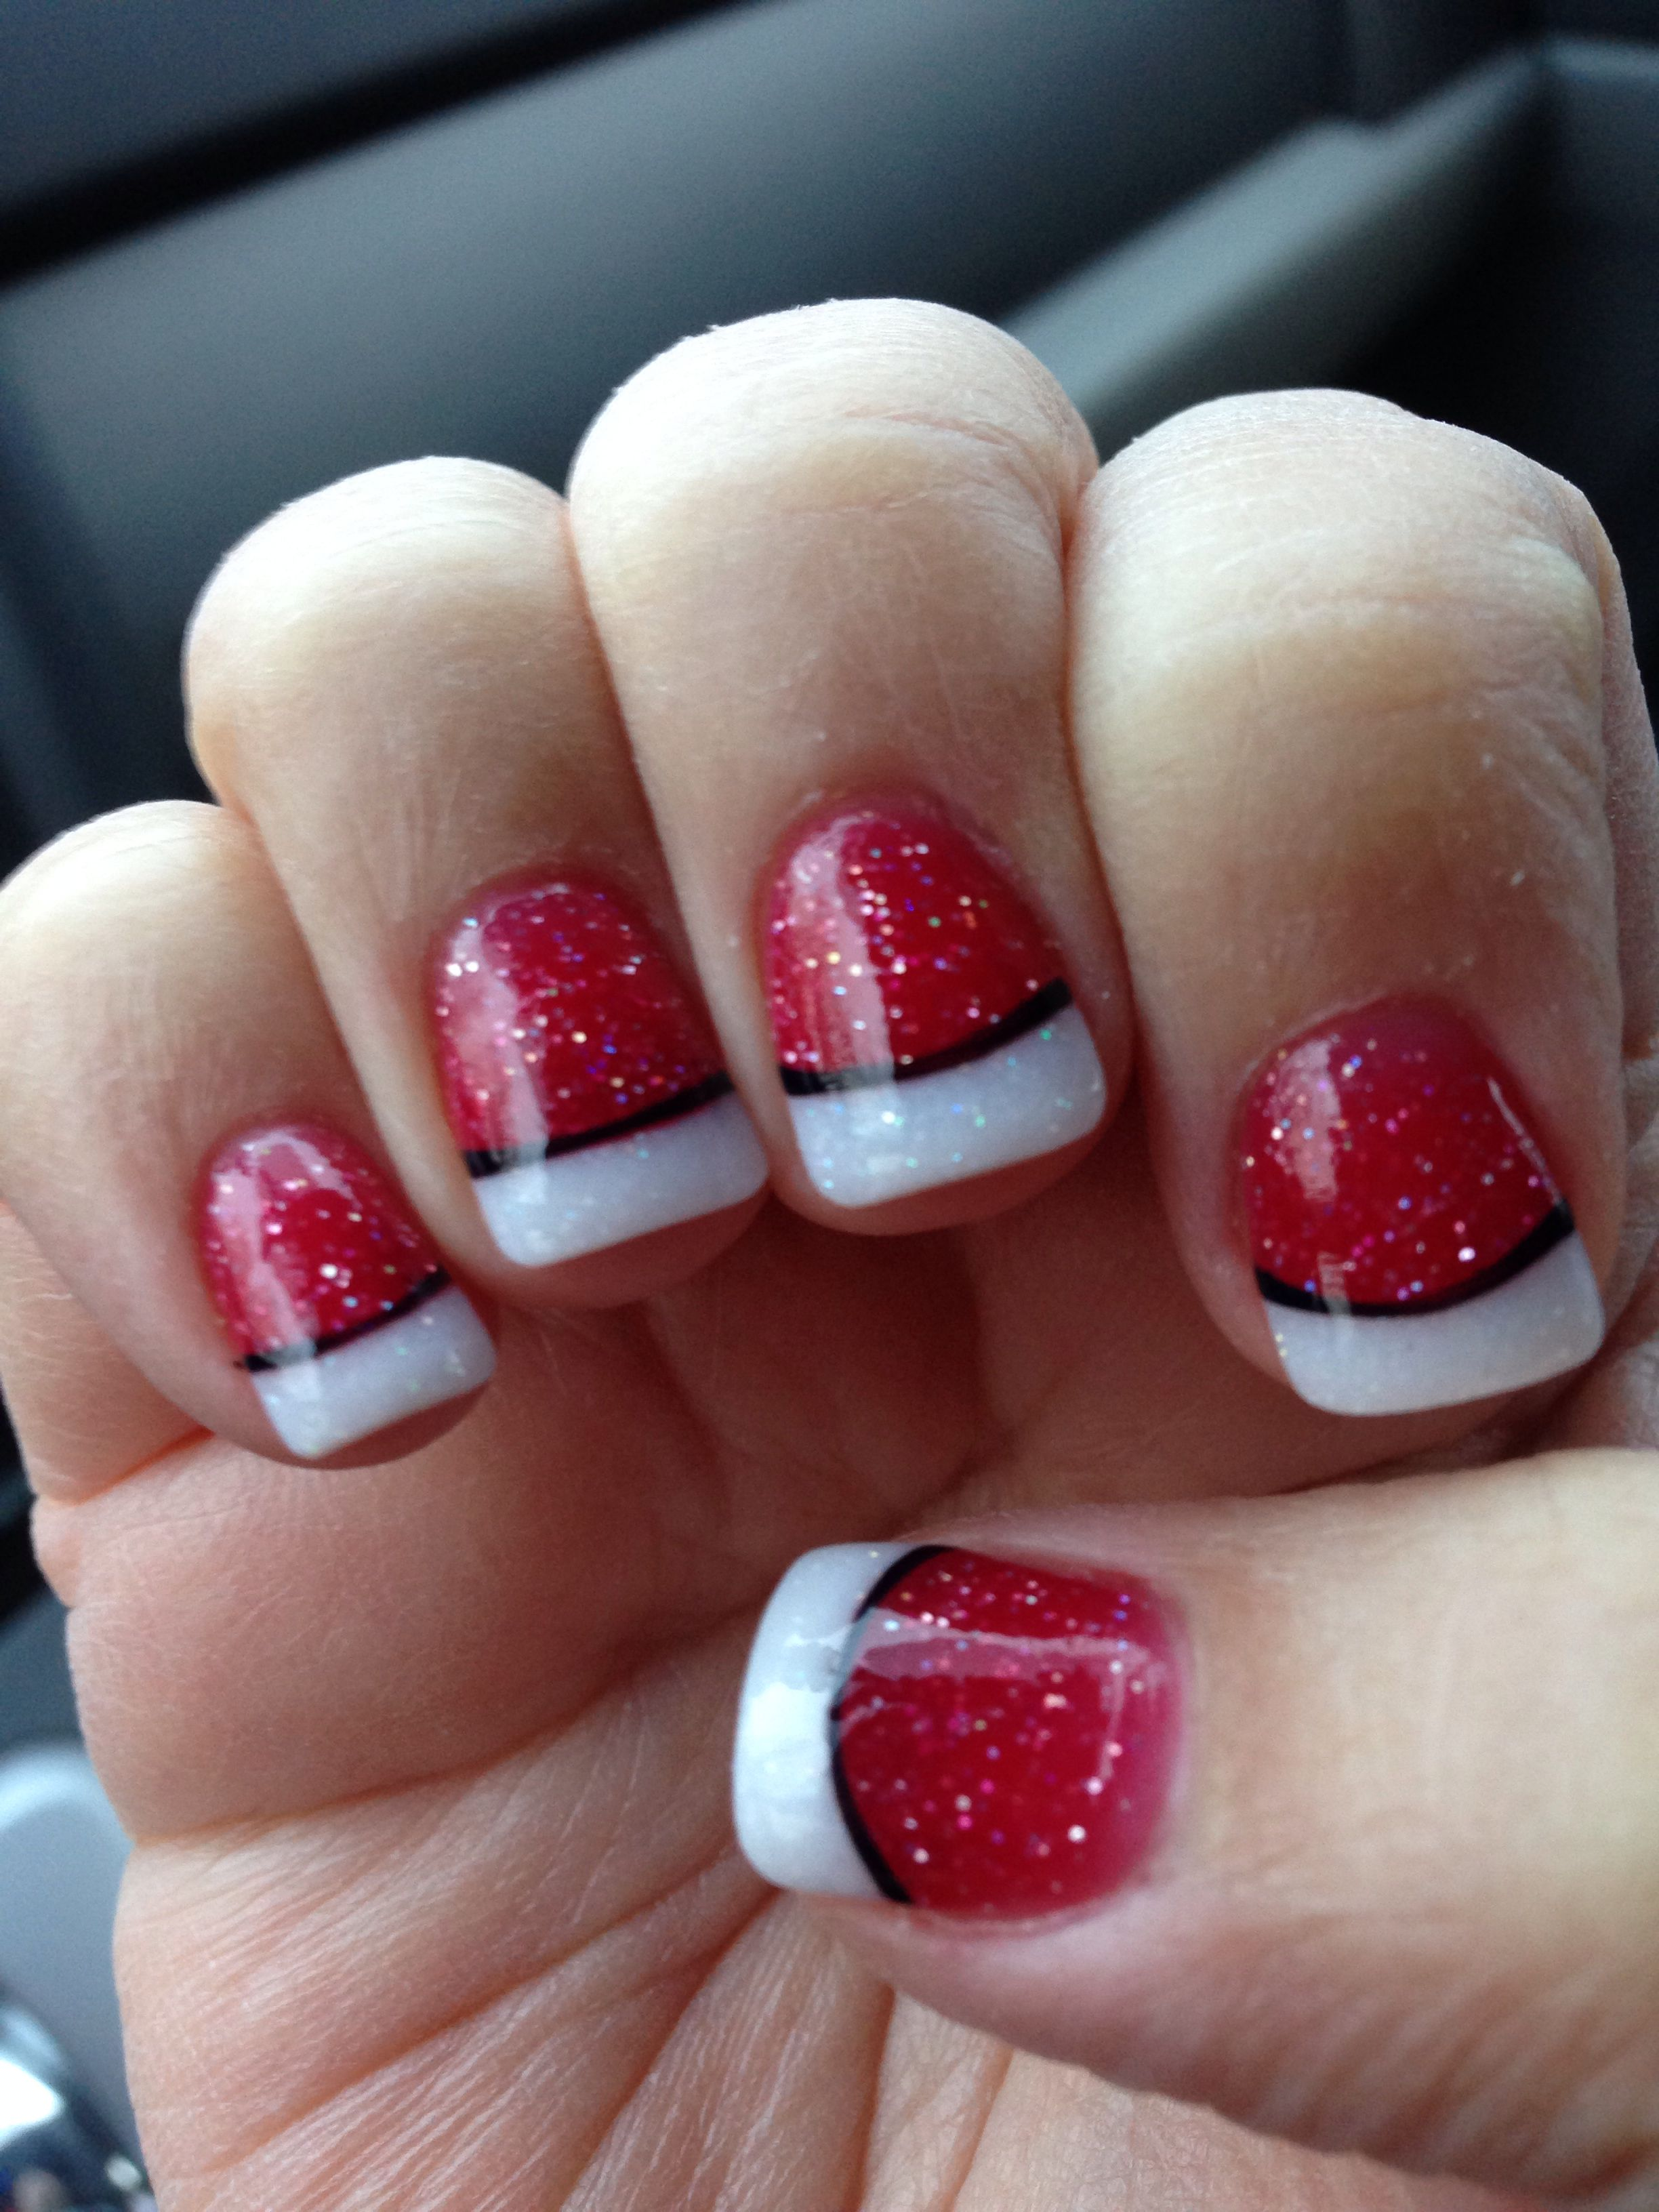 3 Glamorous Nail Designs For Christmas & Holidays